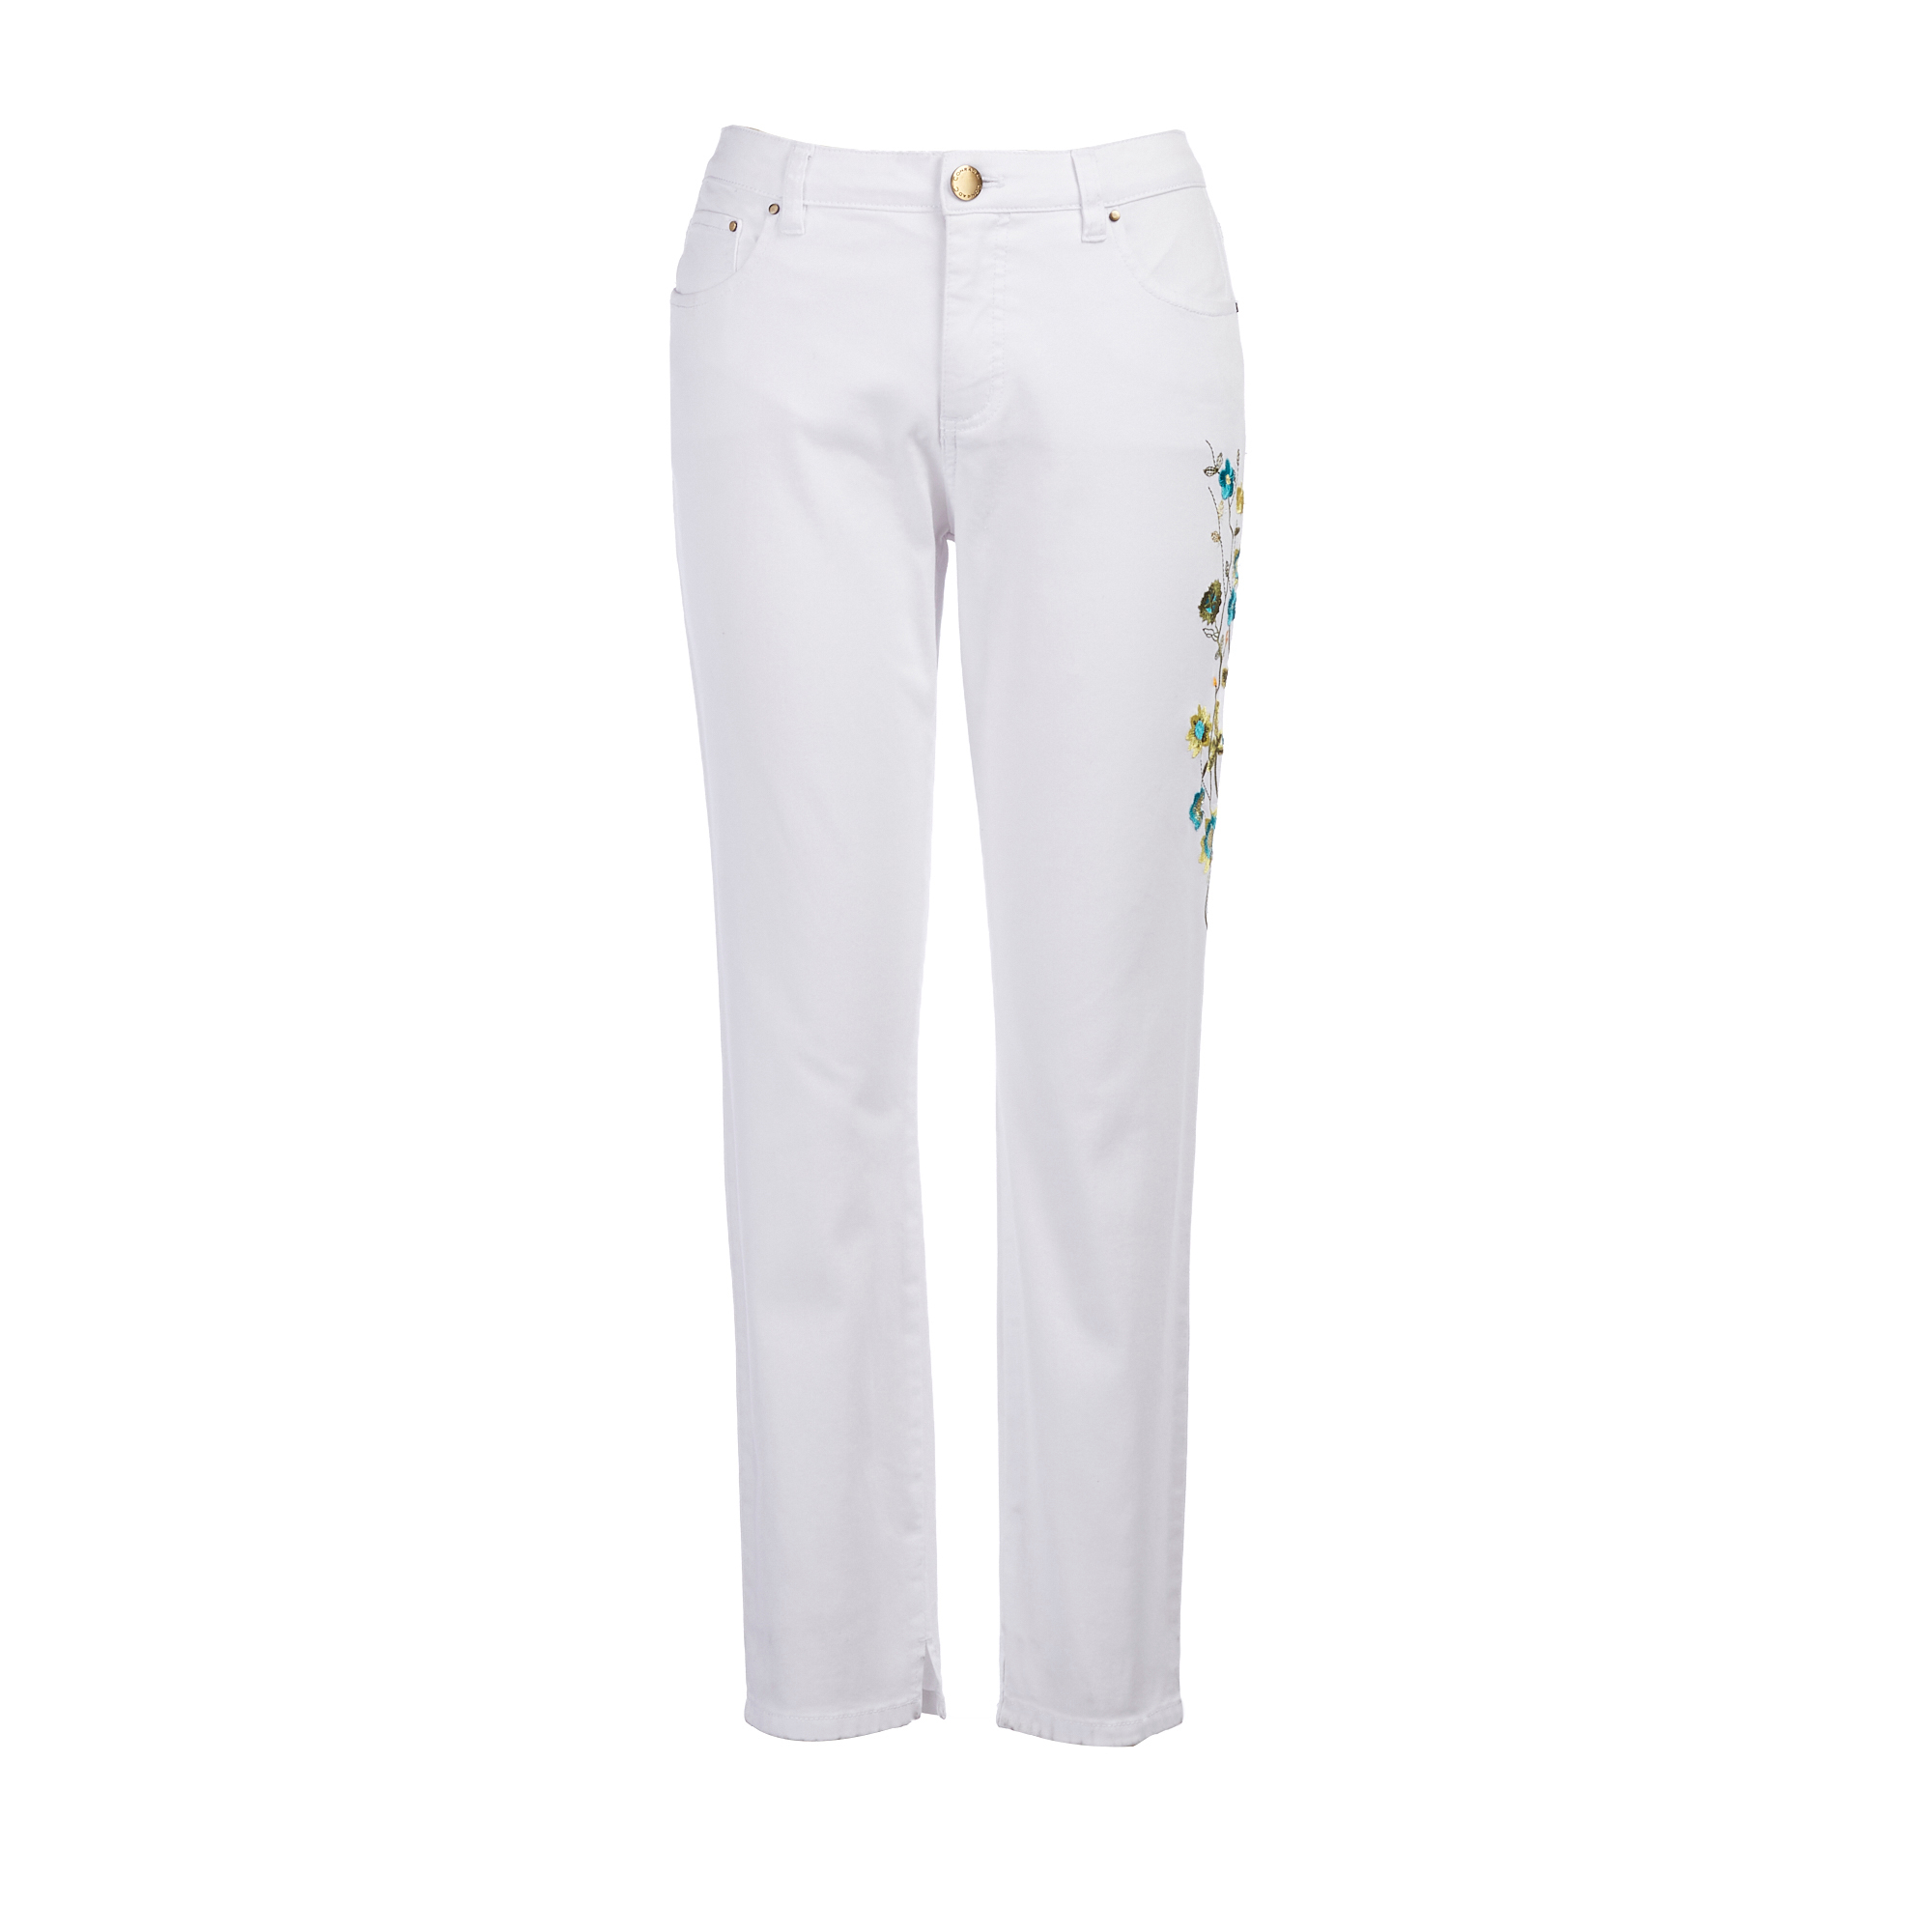 Embroidered White Denim